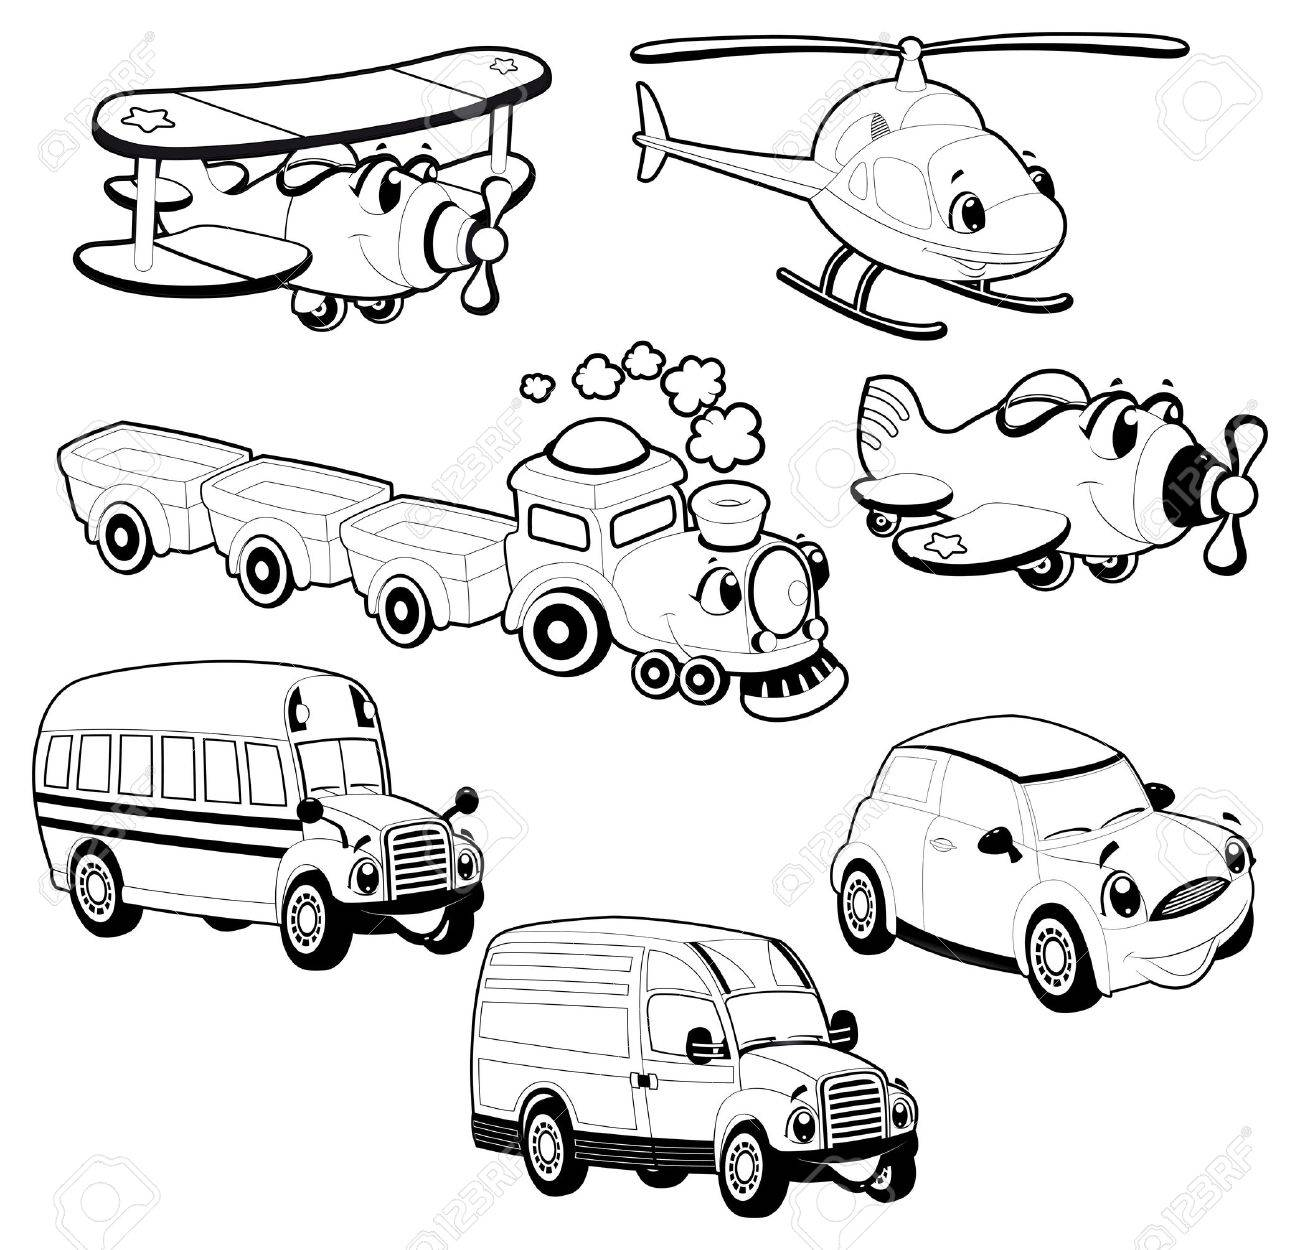 Funny vehicles in outline. Stock Vector - 15284175